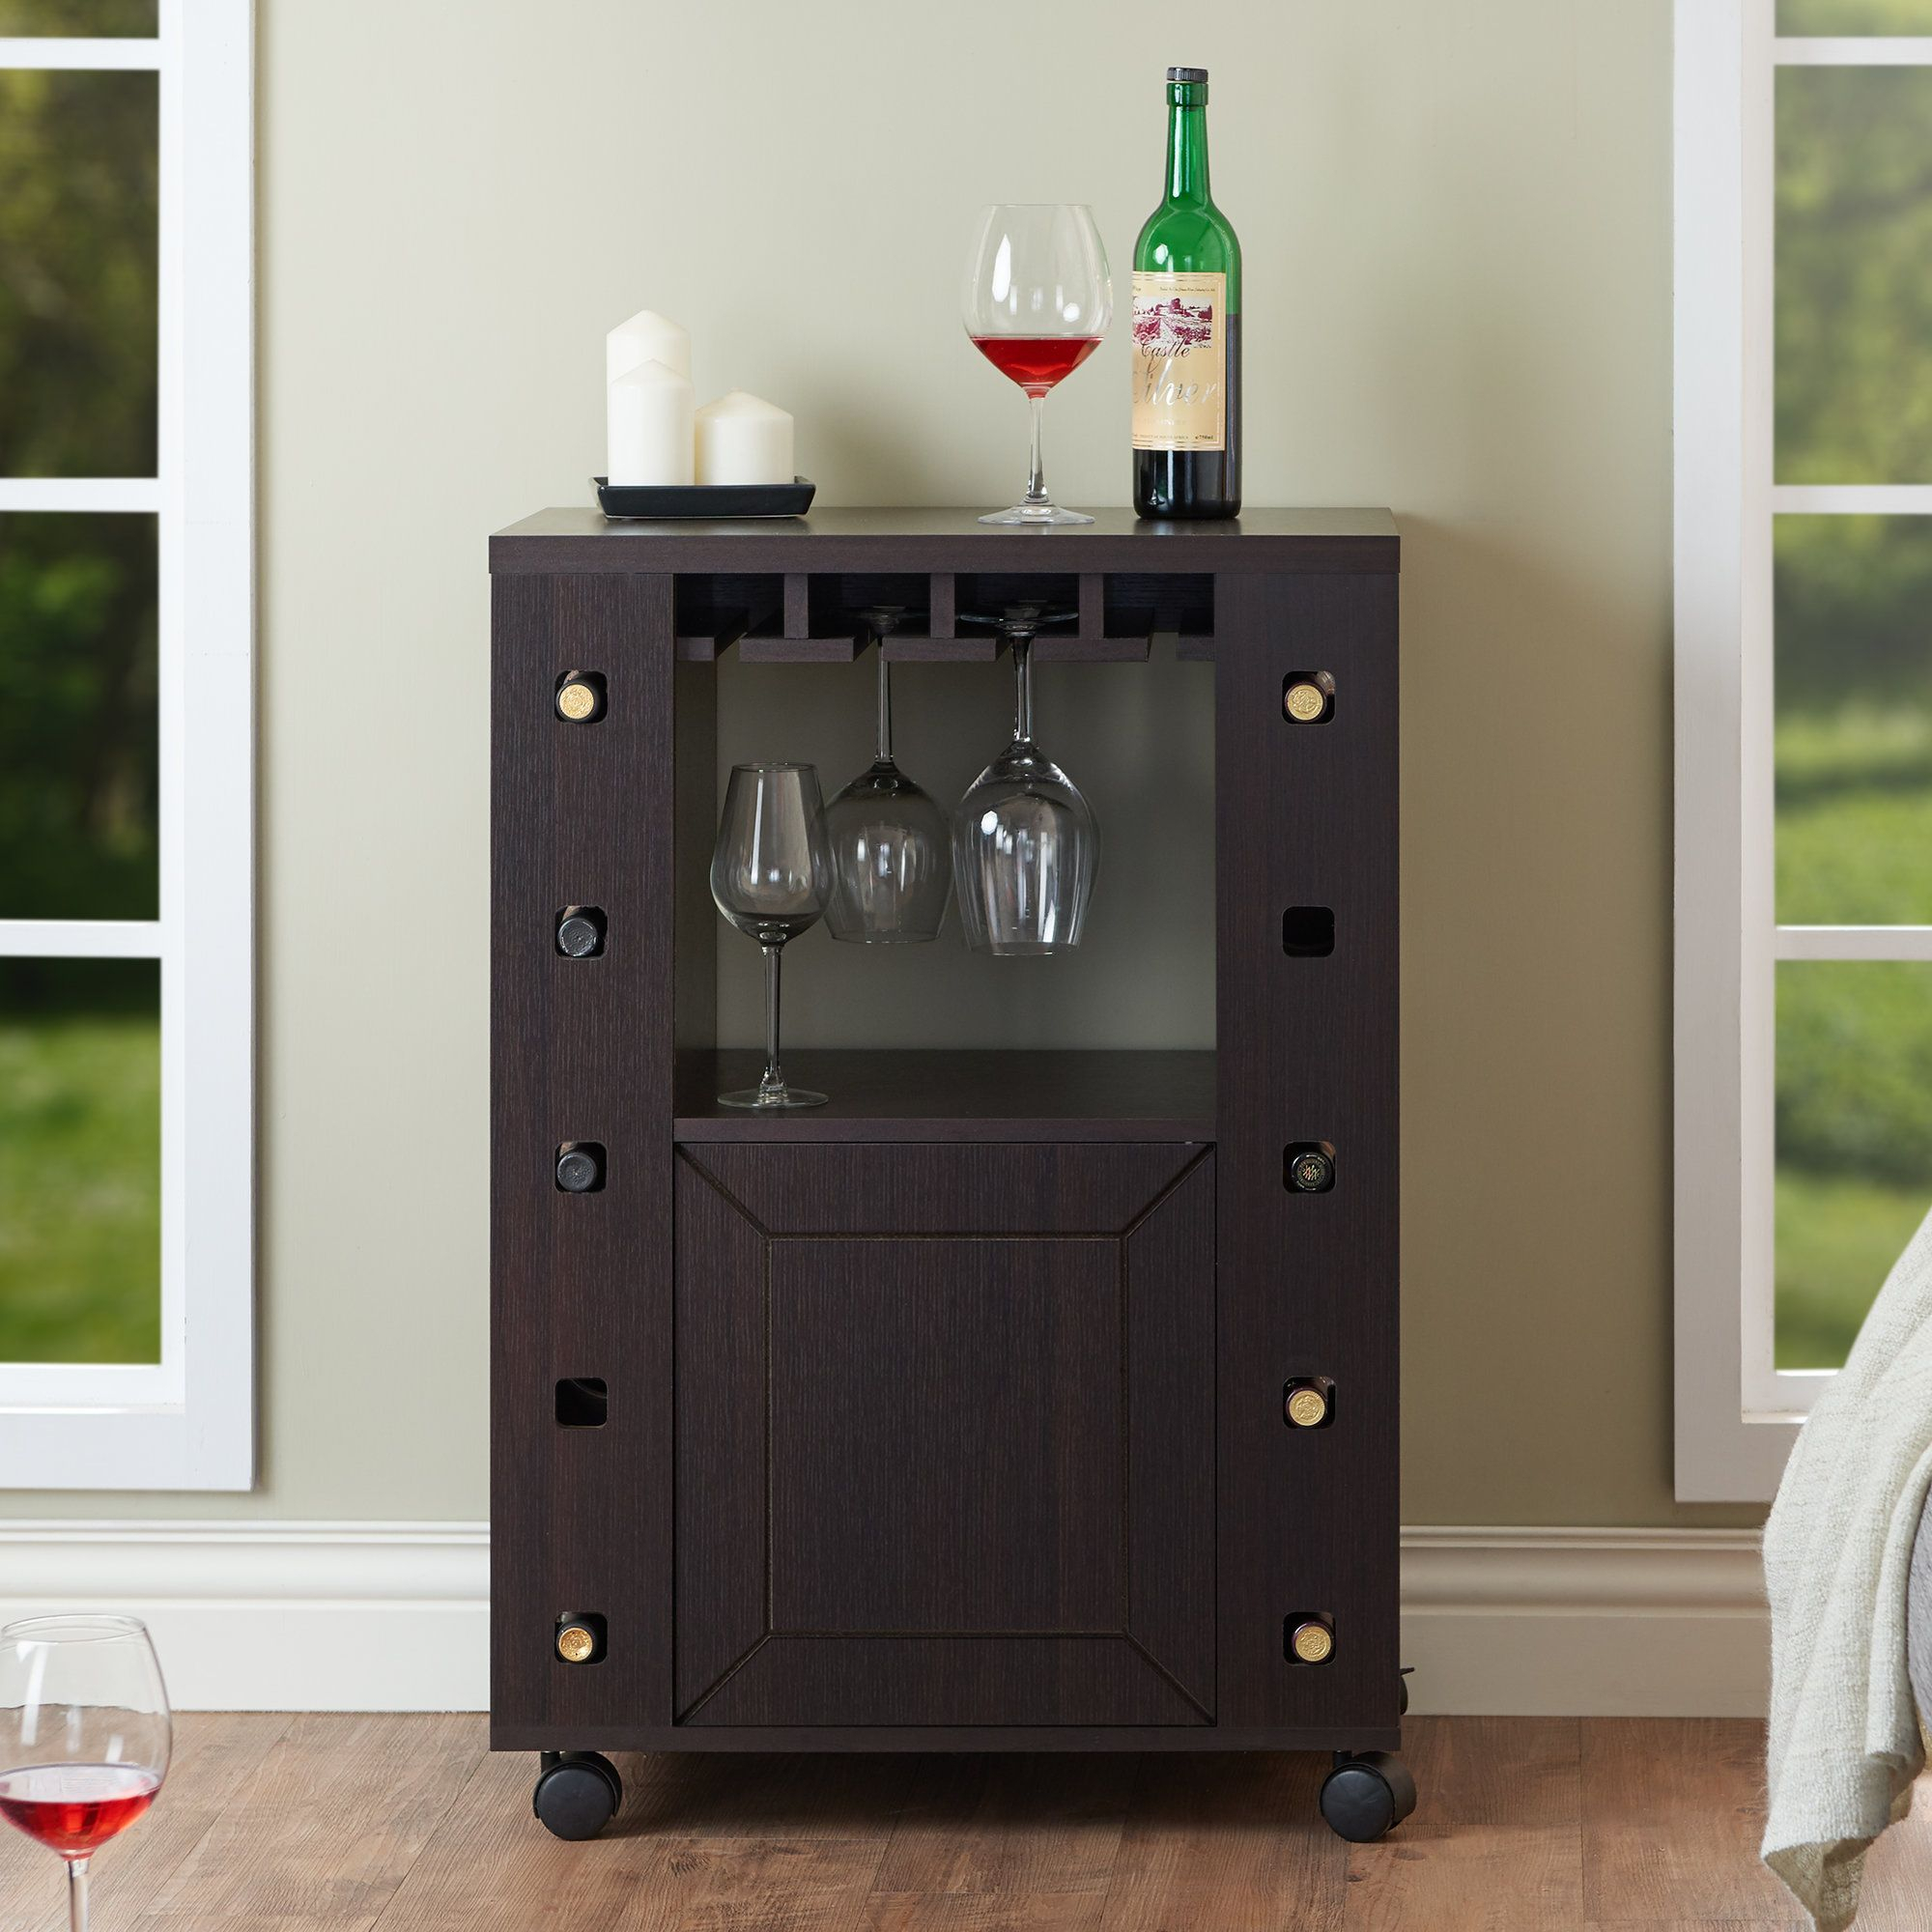 Remi Bar Cabinet | Products | Wine Cabinets, Wine Glass Inside Buffets With Bottle And Glass Storage (Gallery 10 of 30)